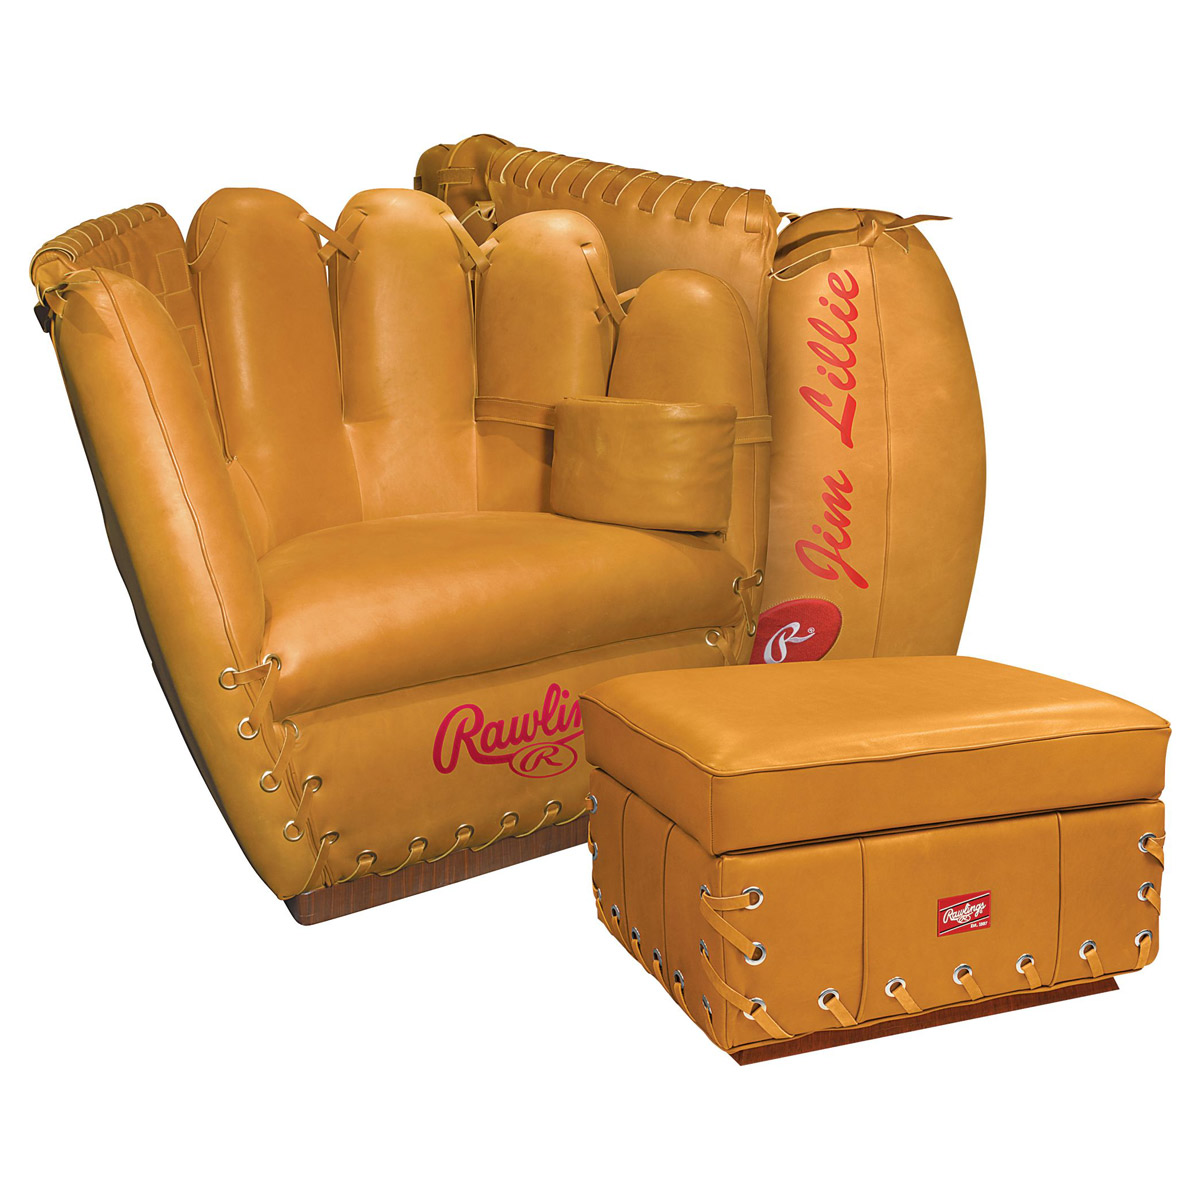 Rawlings Leather Baseball Glove Chair The Green Head